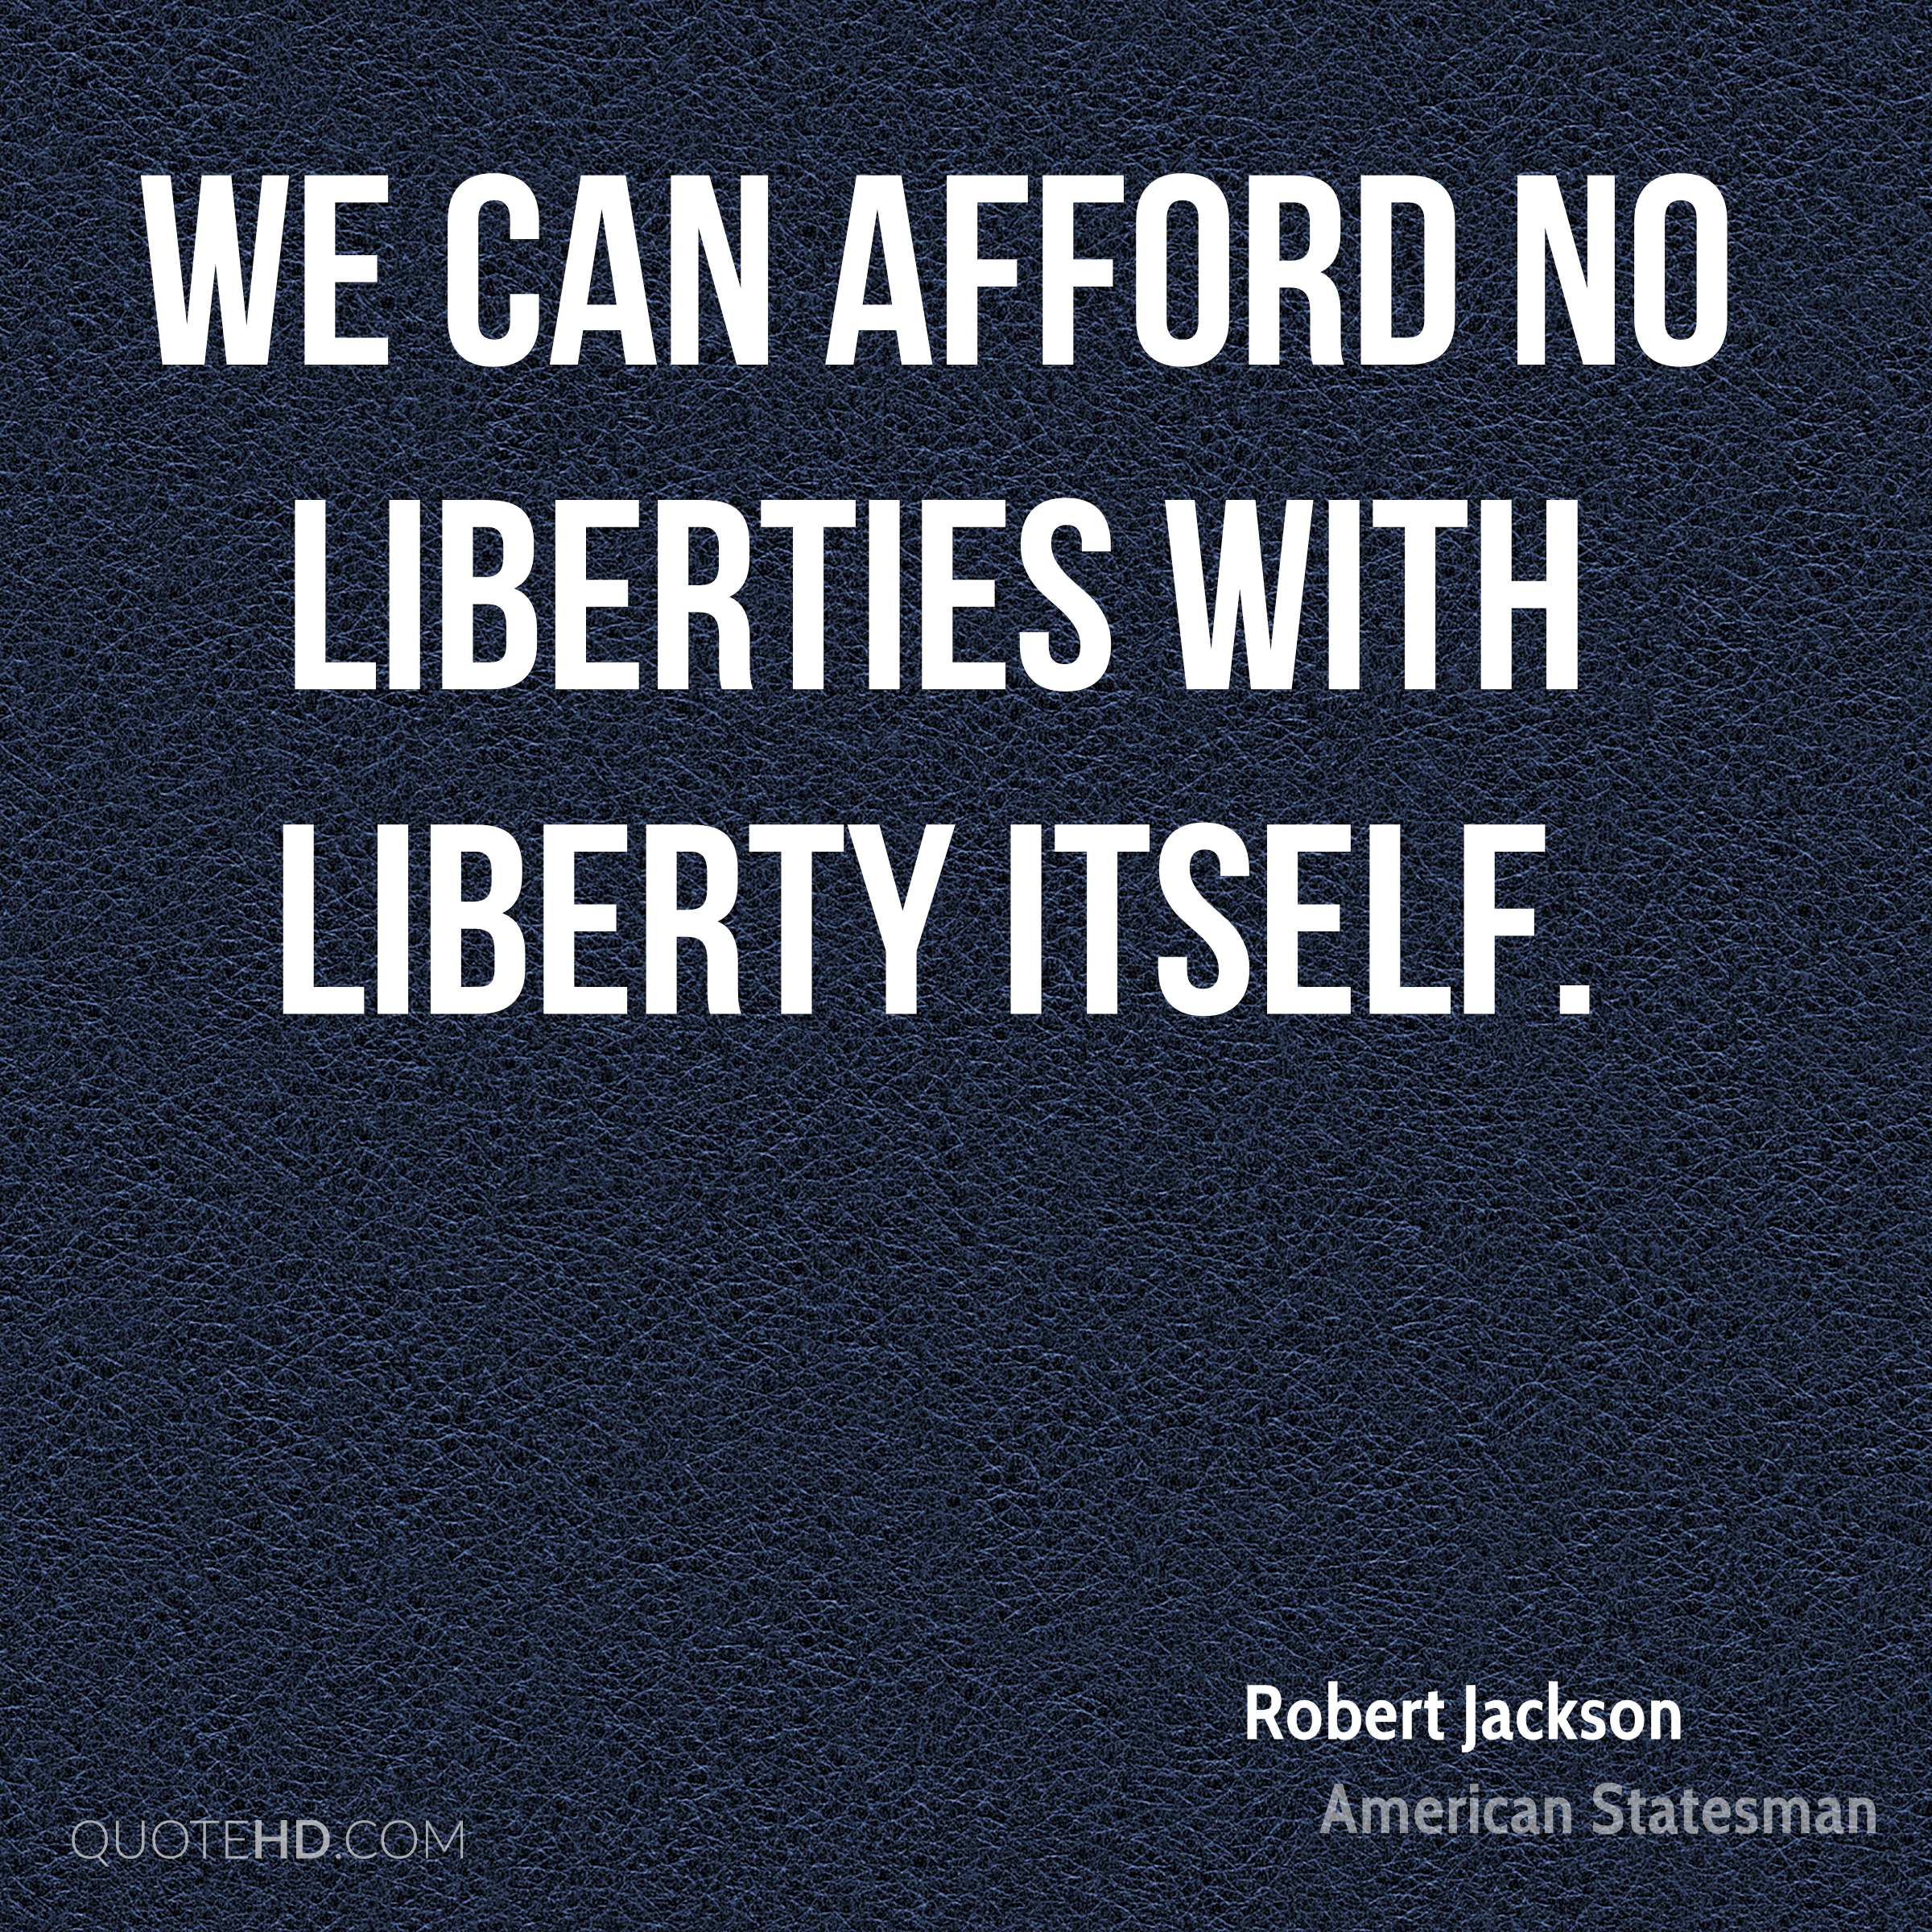 We can afford no liberties with liberty itself.